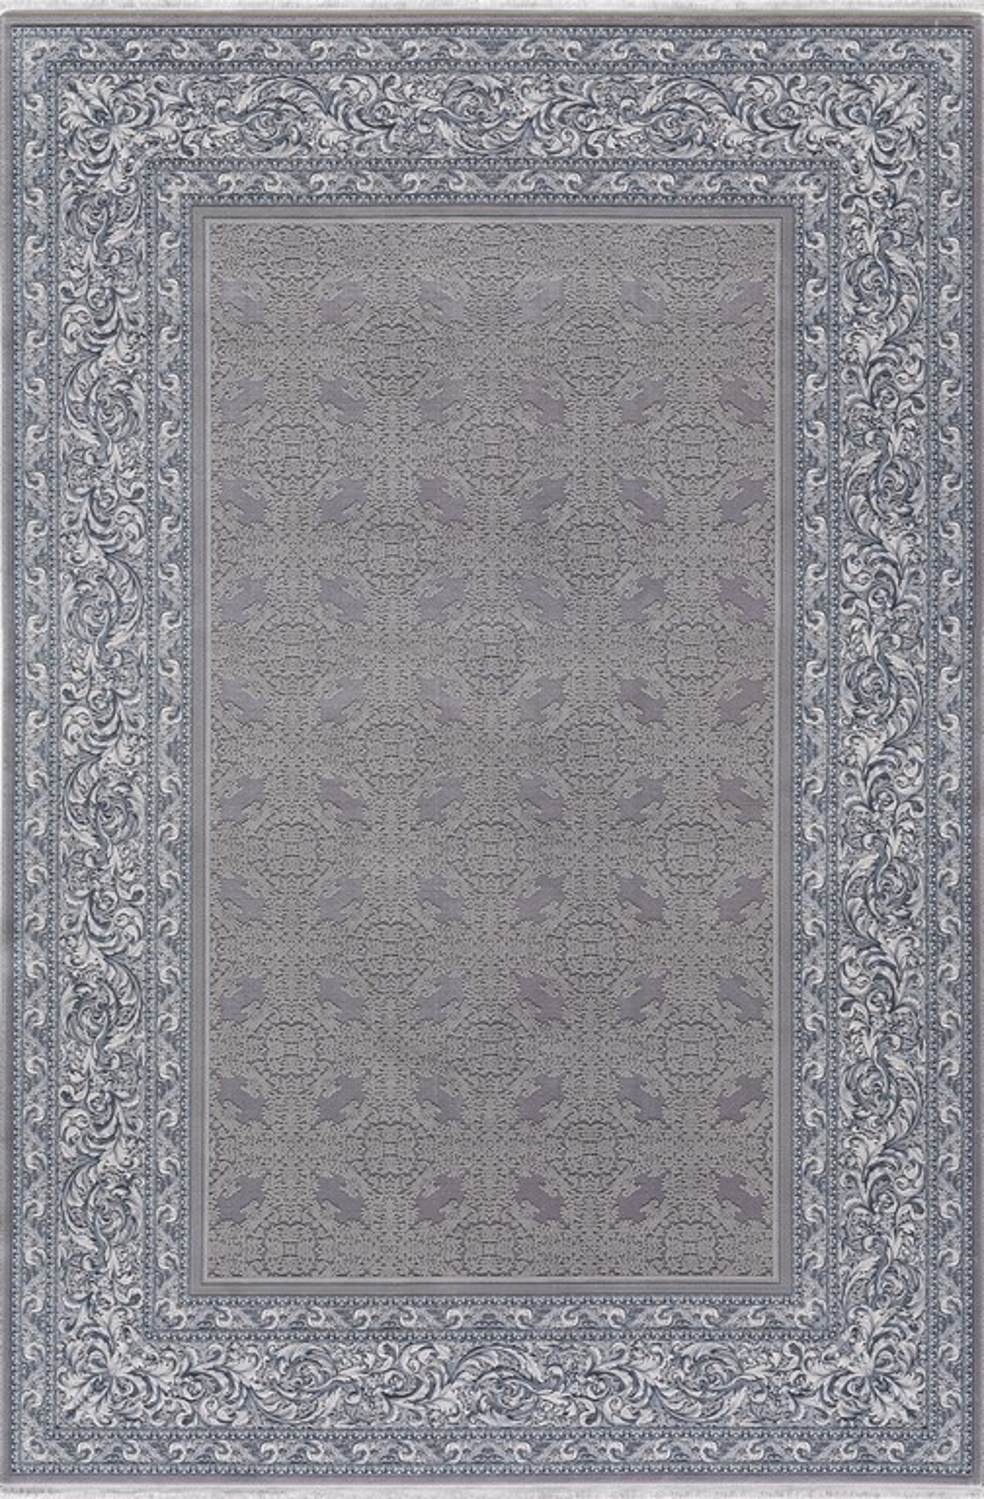 Picture of MEVLANA CARPET MODERN